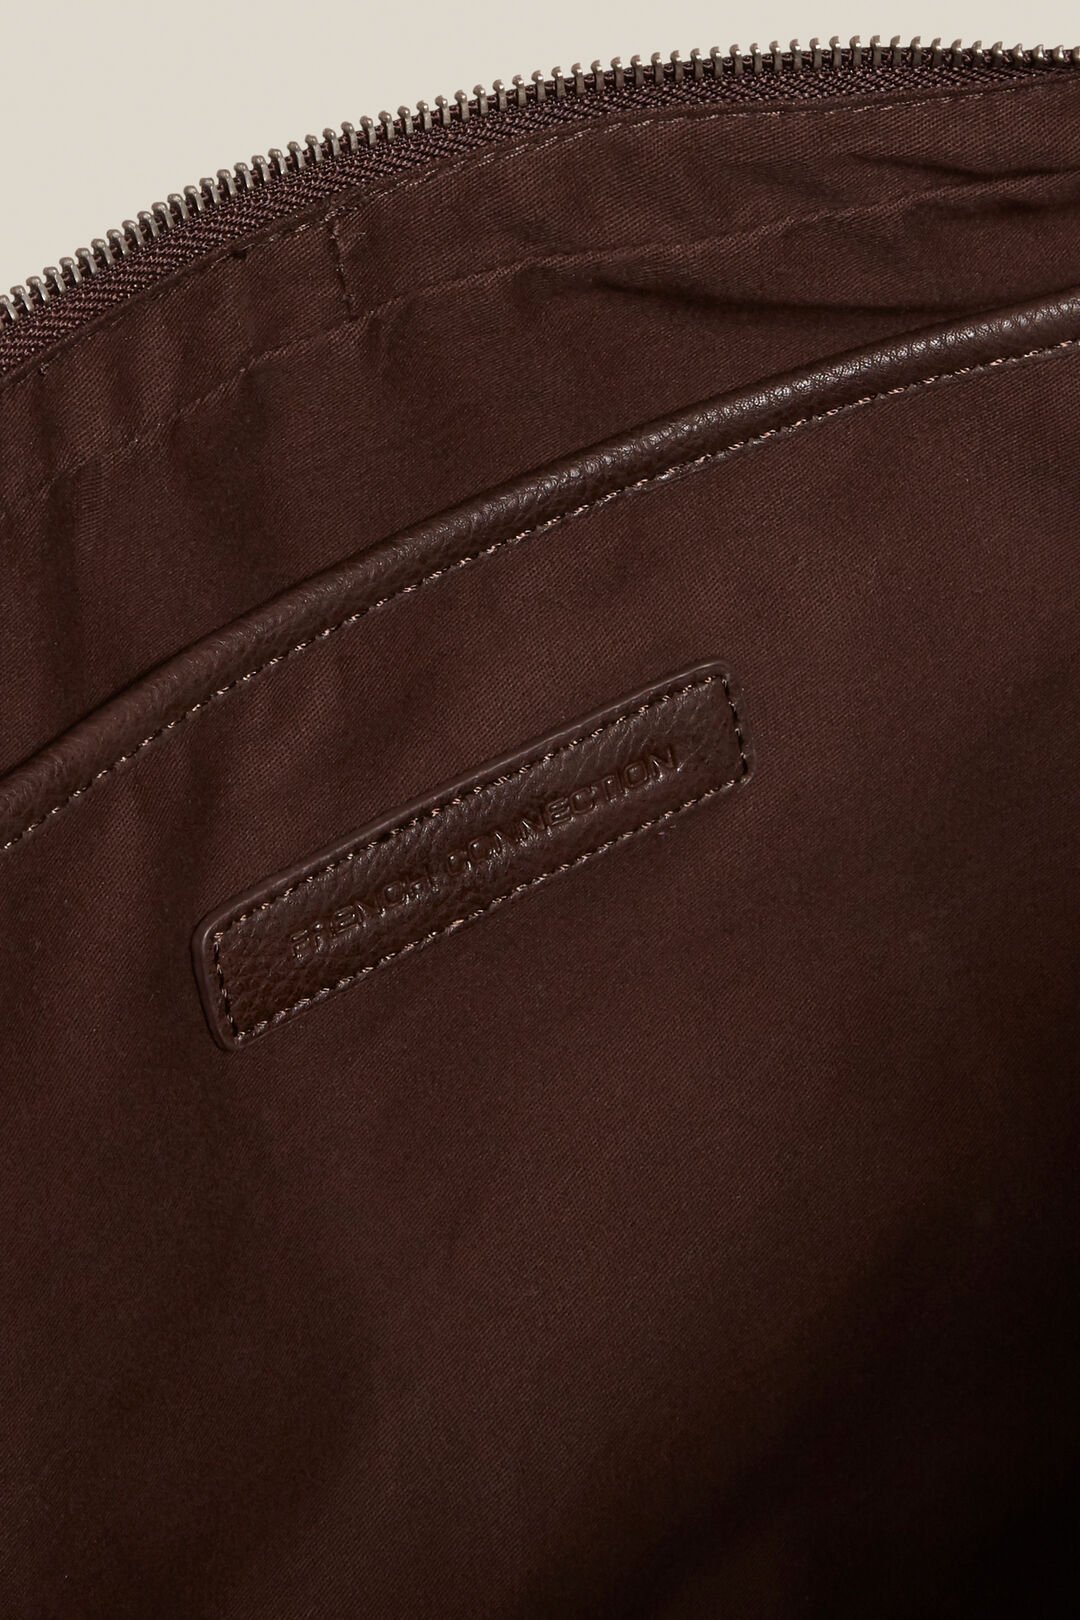 LEATHER LOOK BRIEFCASE  CHOCOLATE  hi-res